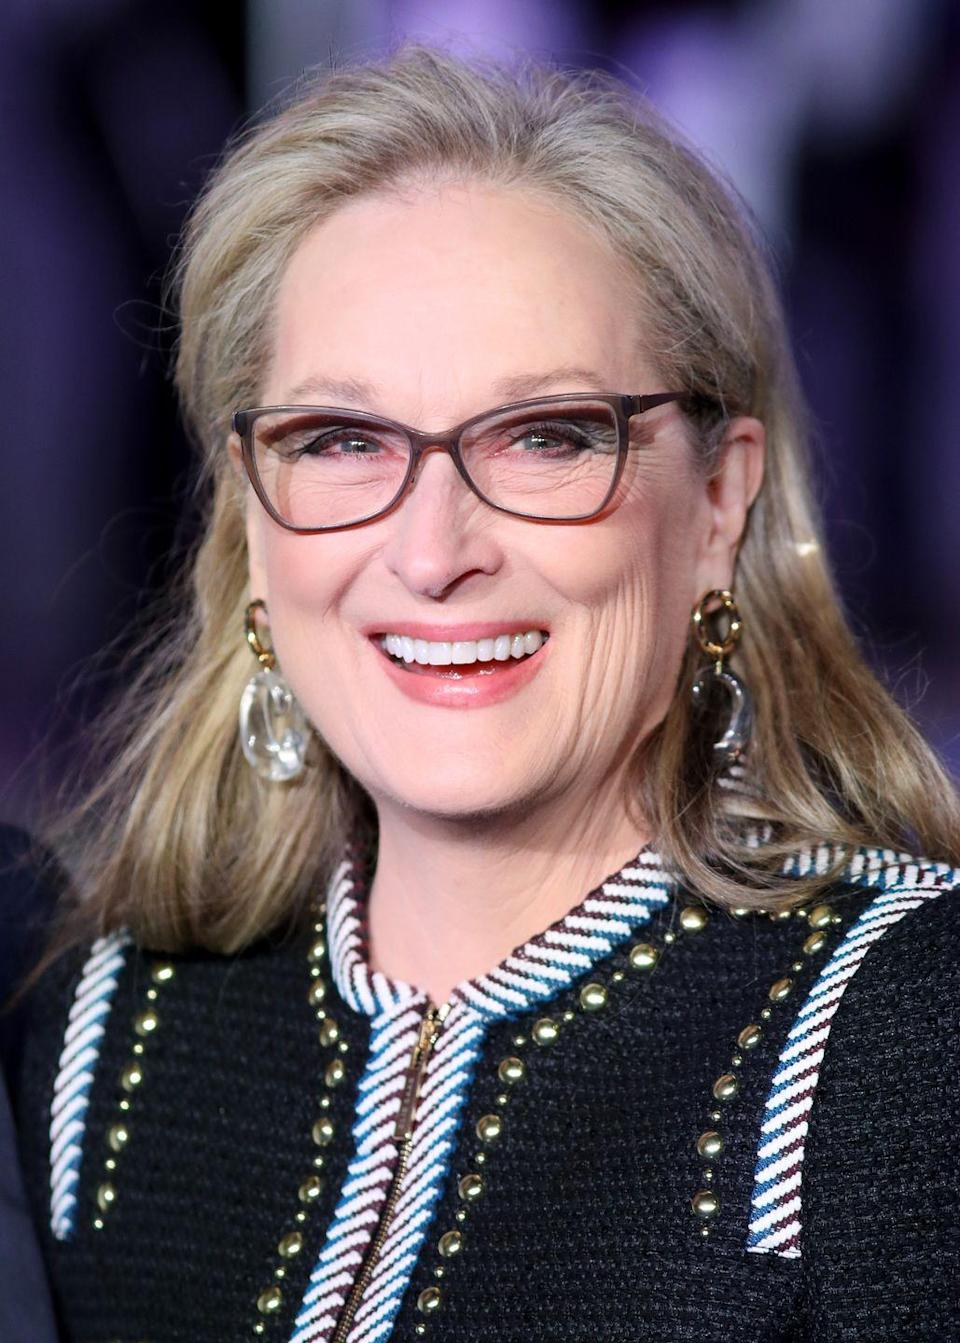 <p>Meryl Streep is one of many celebrities to embrace they gray roots in 2020. Let your gray roots blend with your soft blonde base for an ashy blonde look for autumn.</p>